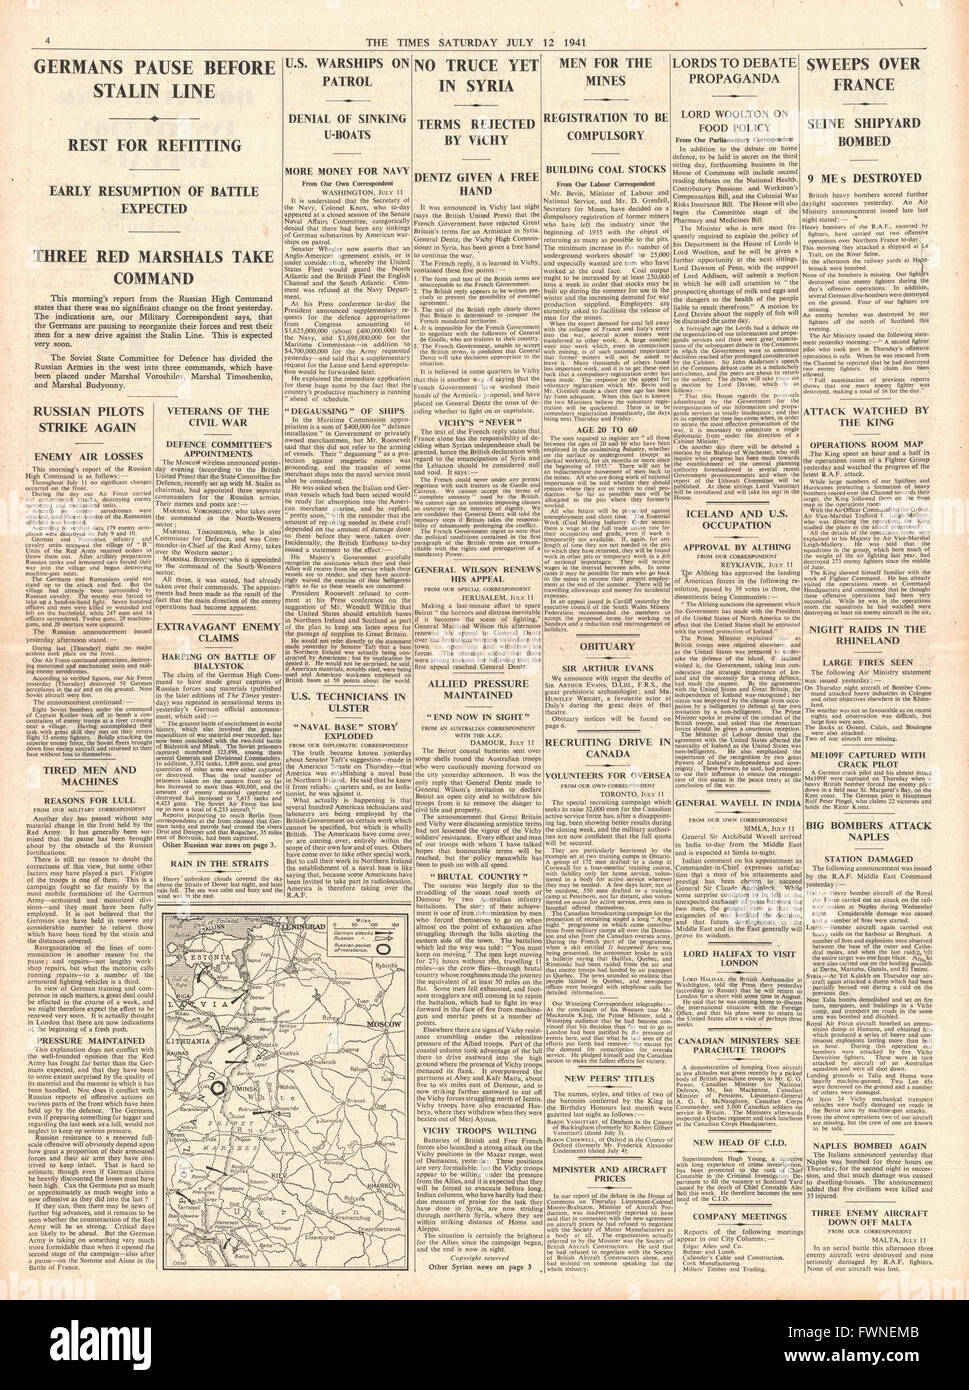 1941 page 4 The Times Stalin appoints three new Commanders, Semyon Budyonny, Semyon Timoshenko and Kliment Voroshilov, - Stock Image